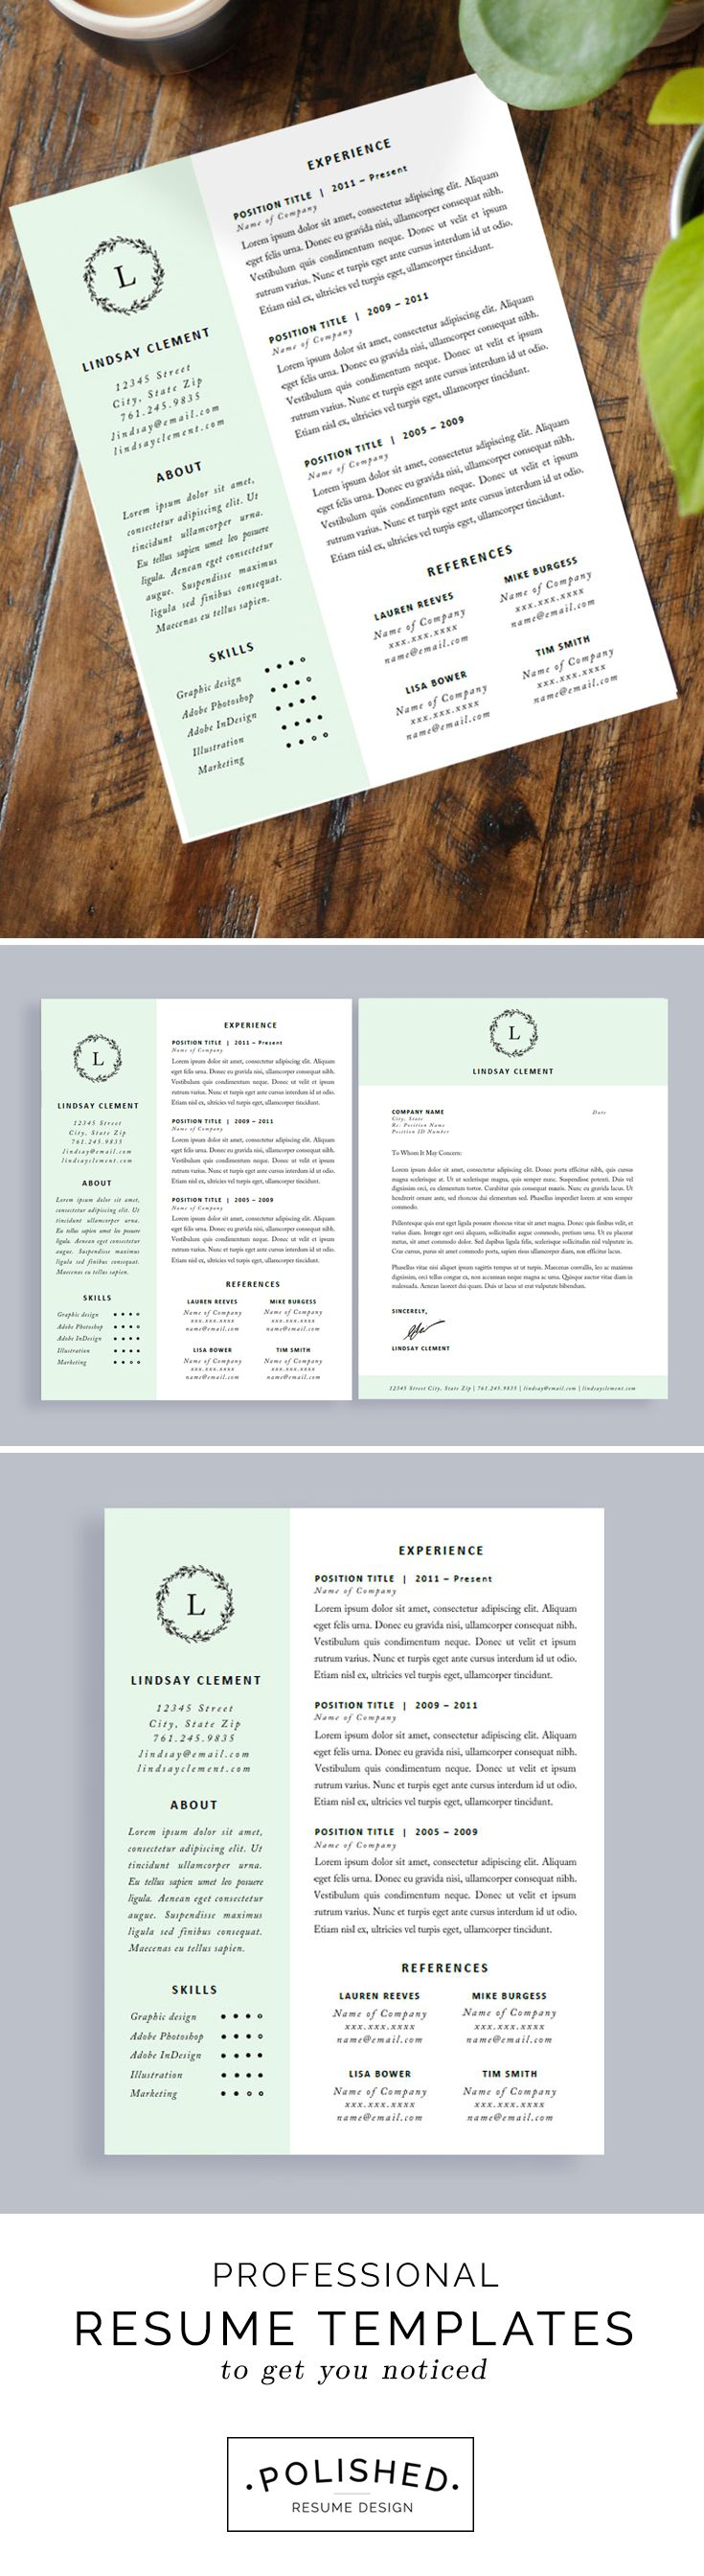 How To Create A Professional Resume And Cover Letter Best Ideas